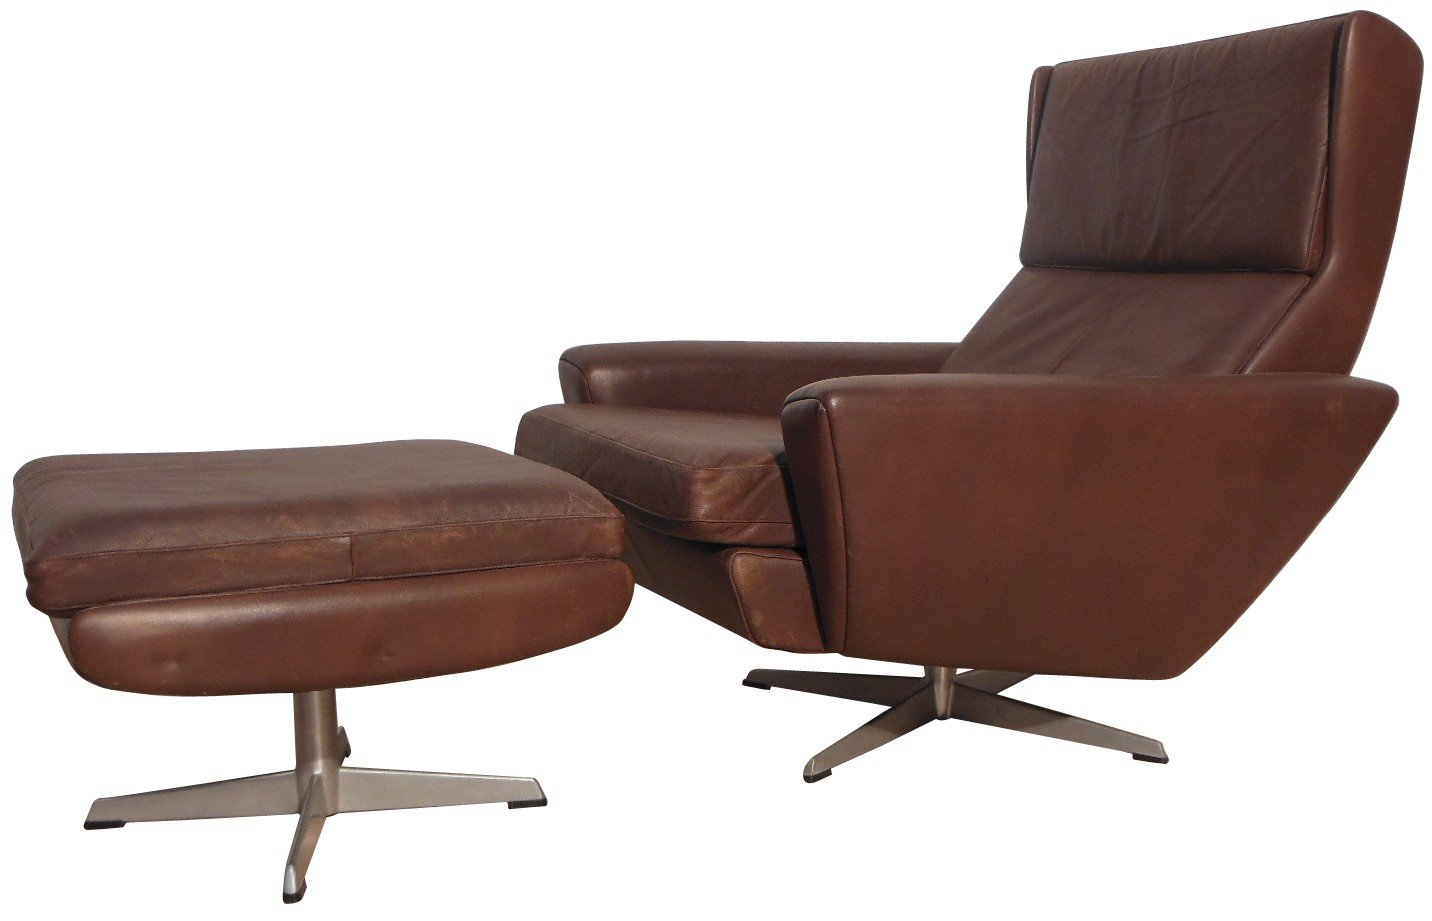 Beau Brown Leather Loungechair And Ottoman, Georg THAMS   1960s. Previous Next